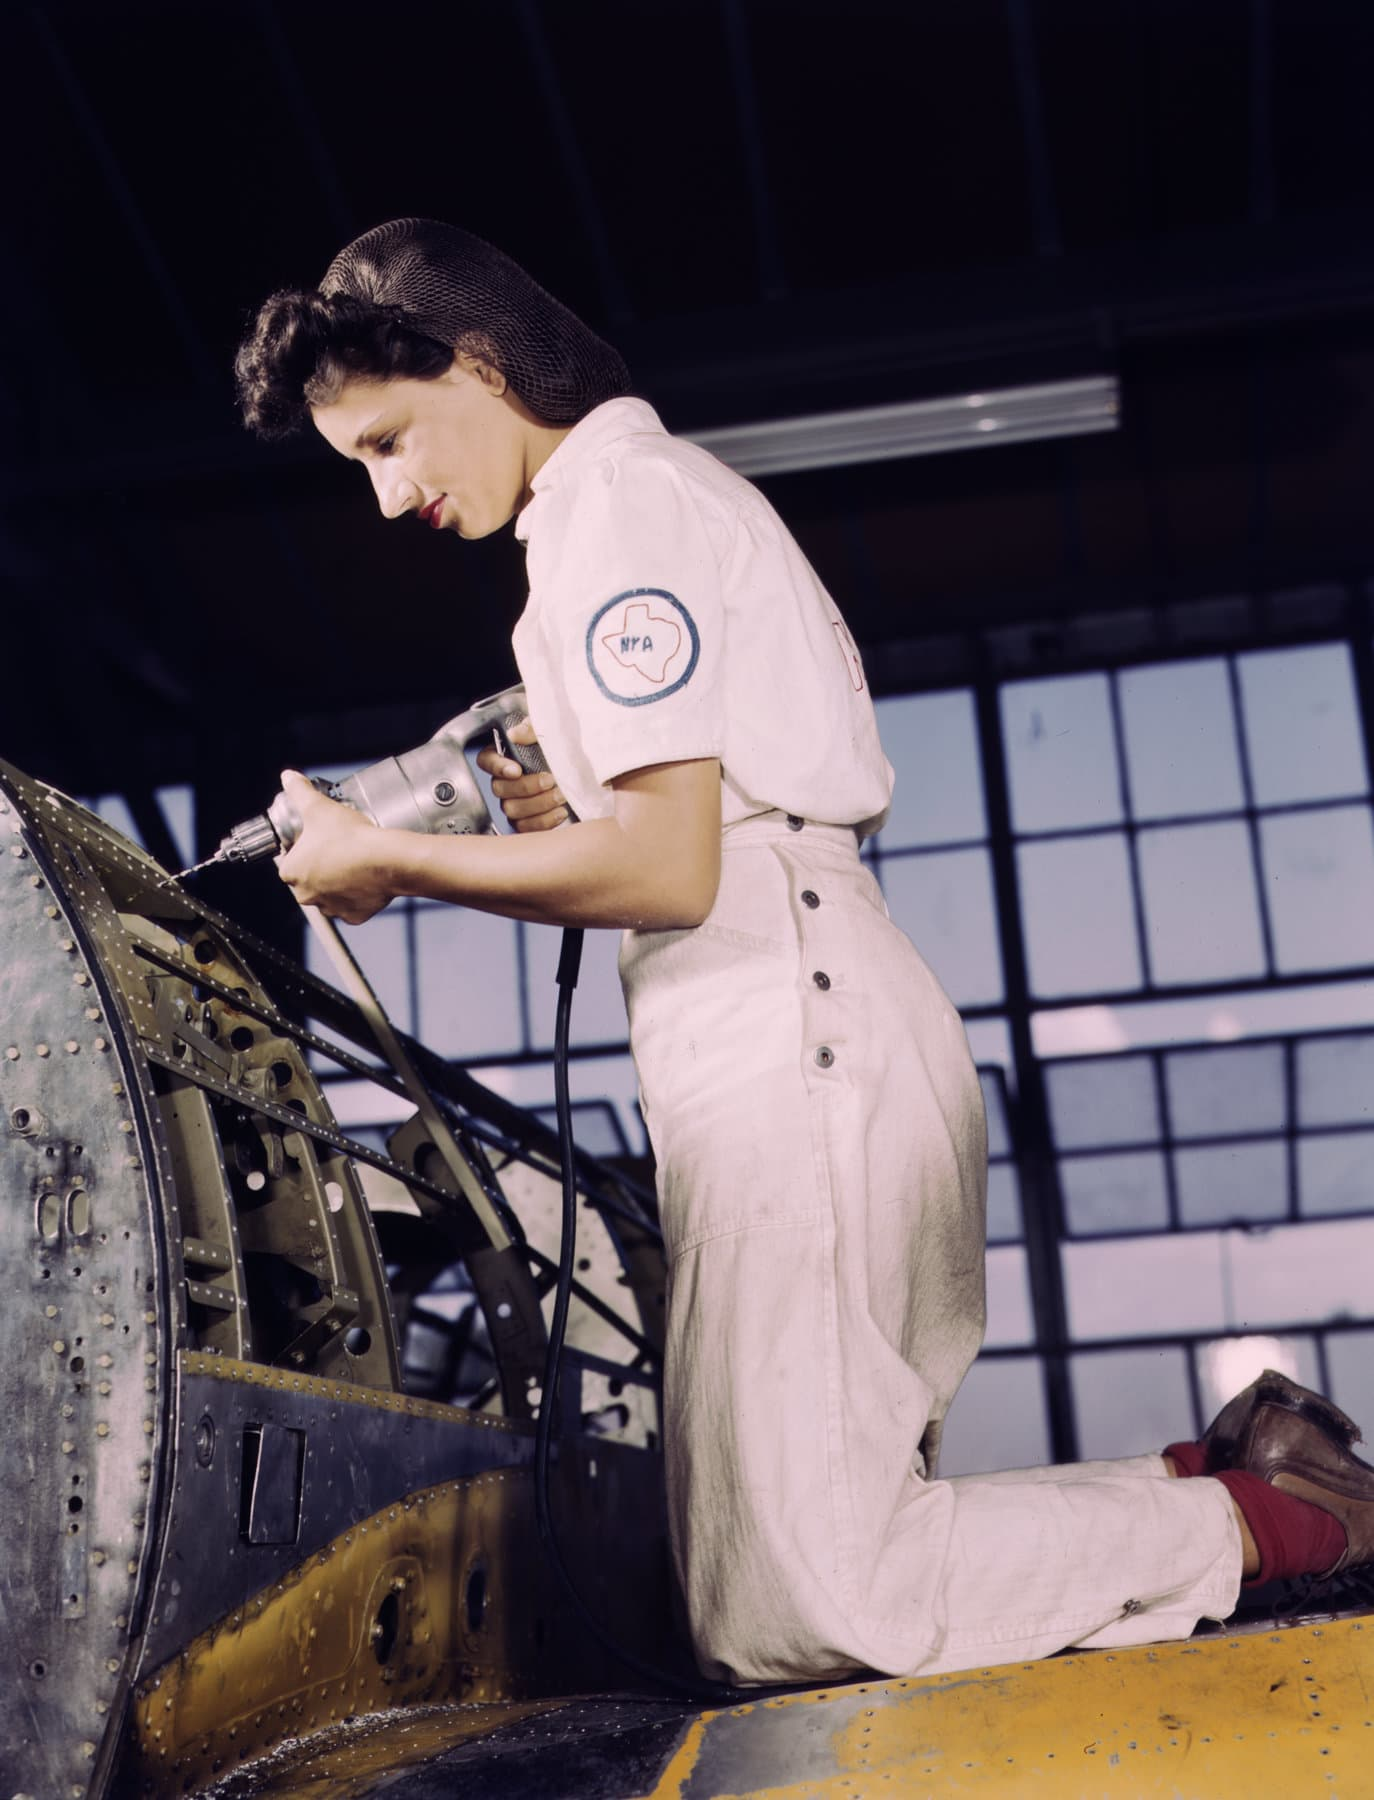 Texas woman learning to rivet for the 1940s war effort